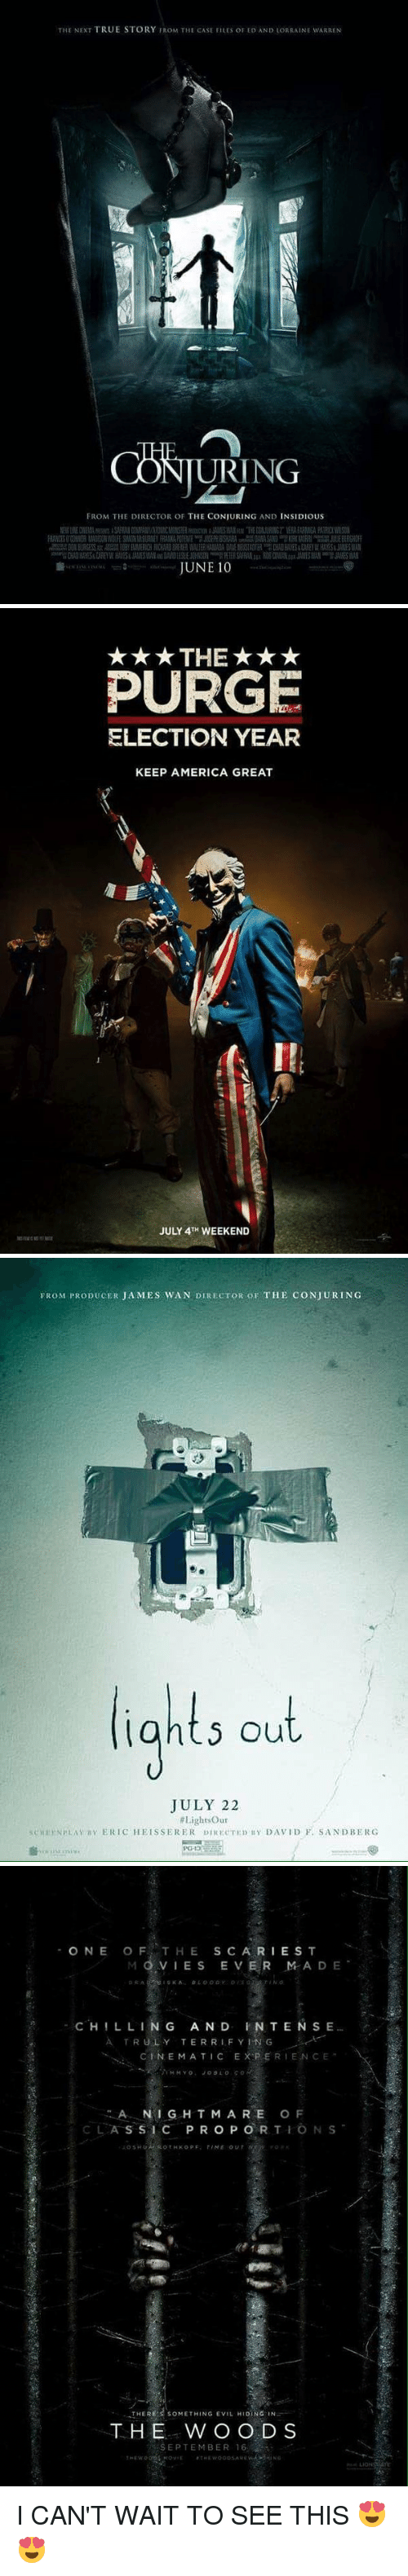 Girl Memes: THE NEXT TRUE STORY FROM THE CASE FILES o ED AND LORRAINE wARREN  NG  FROM THE DIRECTOR OF  THE CONJURING AND INSIDIOUS  JUNE 10   THE  PURGE  ELECTION YEAR  KEEP AMERICA GREAT  JULY 4TH WEEKEND   FROM PRODUCER JAMES WAN DIRECTOR or THE coNJURING  lights out  JULY 22  al ightsour  seni NALAY ERIC HEISSERER DIRECTrn BY DAVID F. SANDBERG   ONE OF THE SCARIEST  VIES EVER M A D E  BLOOD  CHILLING  AND IN TENSE  A TRULY TERRI F Y IN G  CINEMA TIC EXPERIENCE  N I G H T M ARE OF  S S I C P R O P O R T HO  TIME OUT  THERE s soMETHING EVIL HIDING IN  T H E W O O D S  SEPTEMBER 16 I CAN'T WAIT TO SEE THIS 😍😍